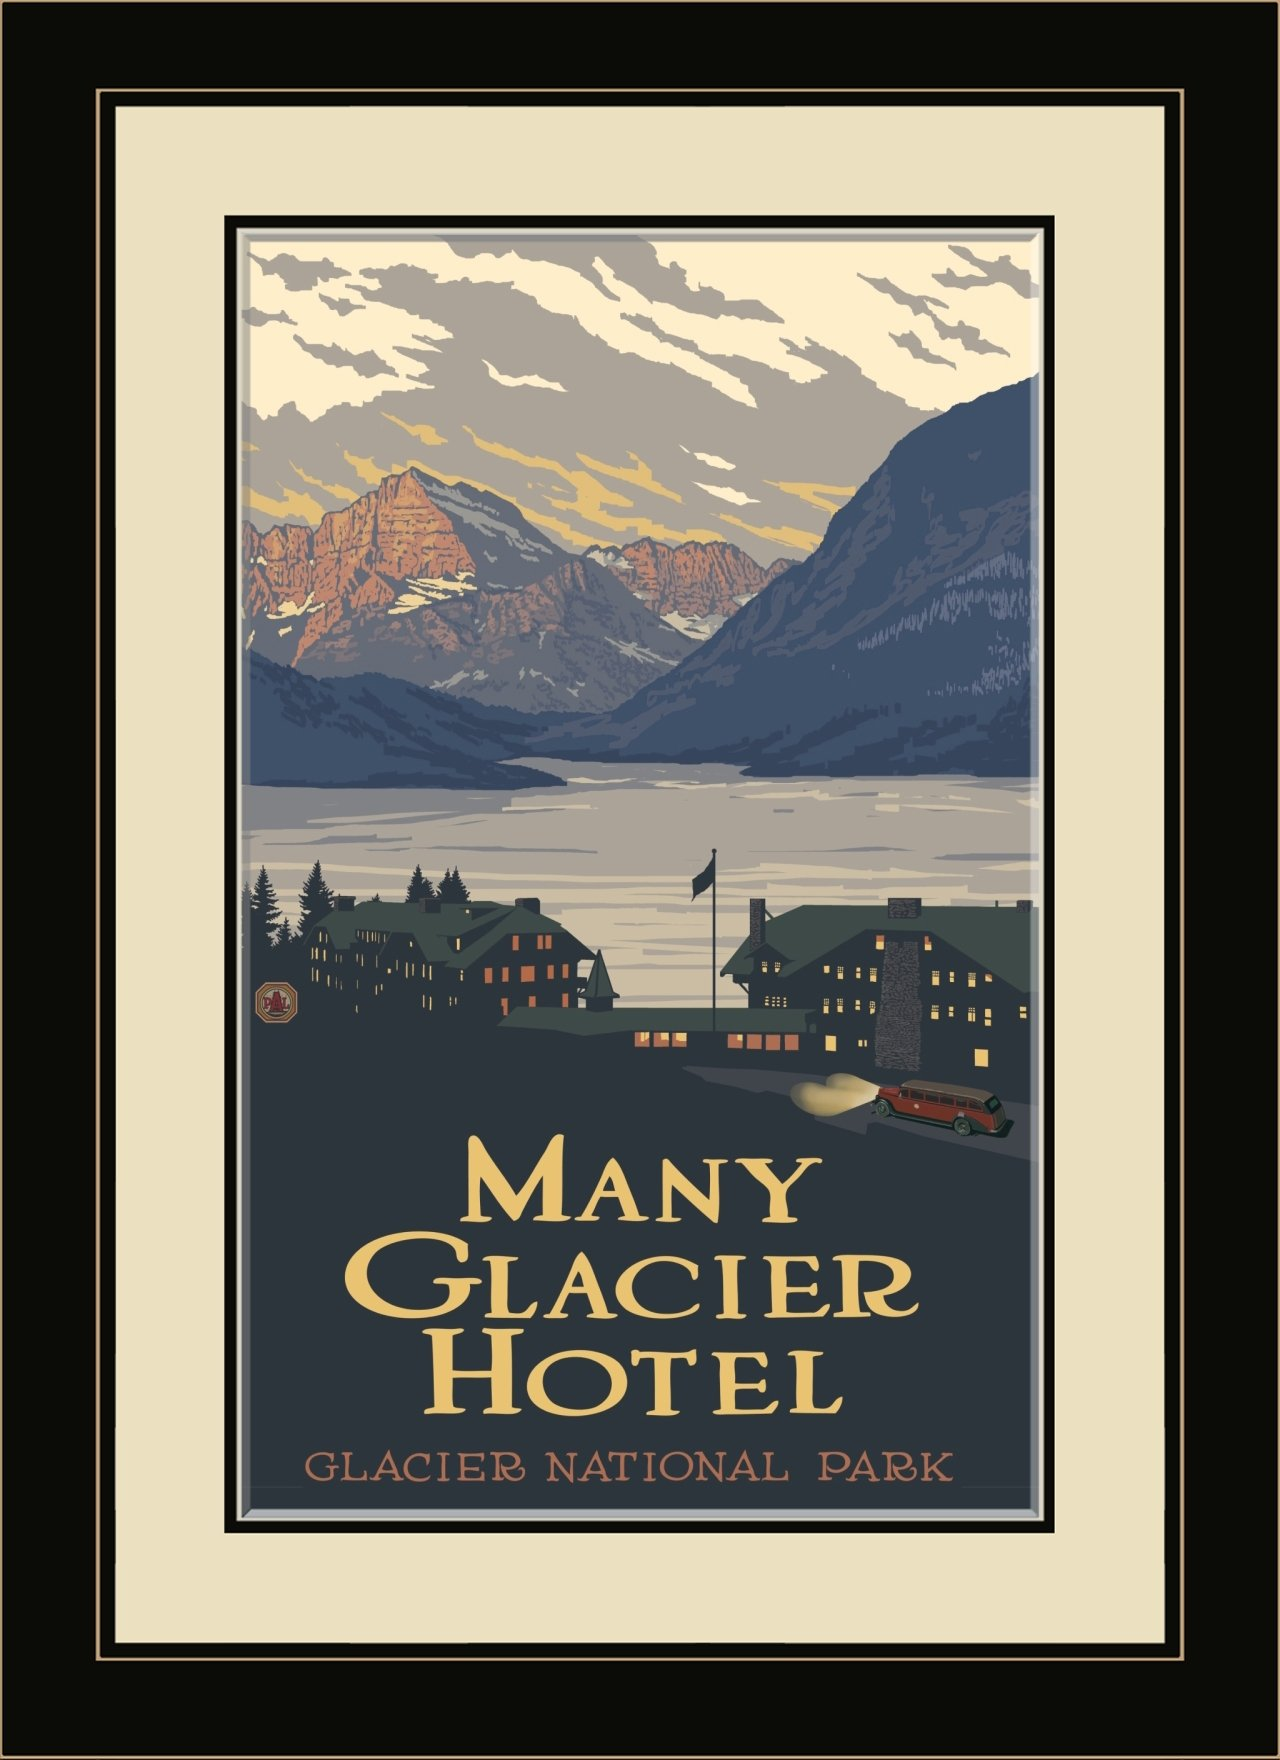 Northwest Art Mall National Park Many Glacier Hotel Framed Wall Art by Paul A. Lanquist, 13 by 16-Inch